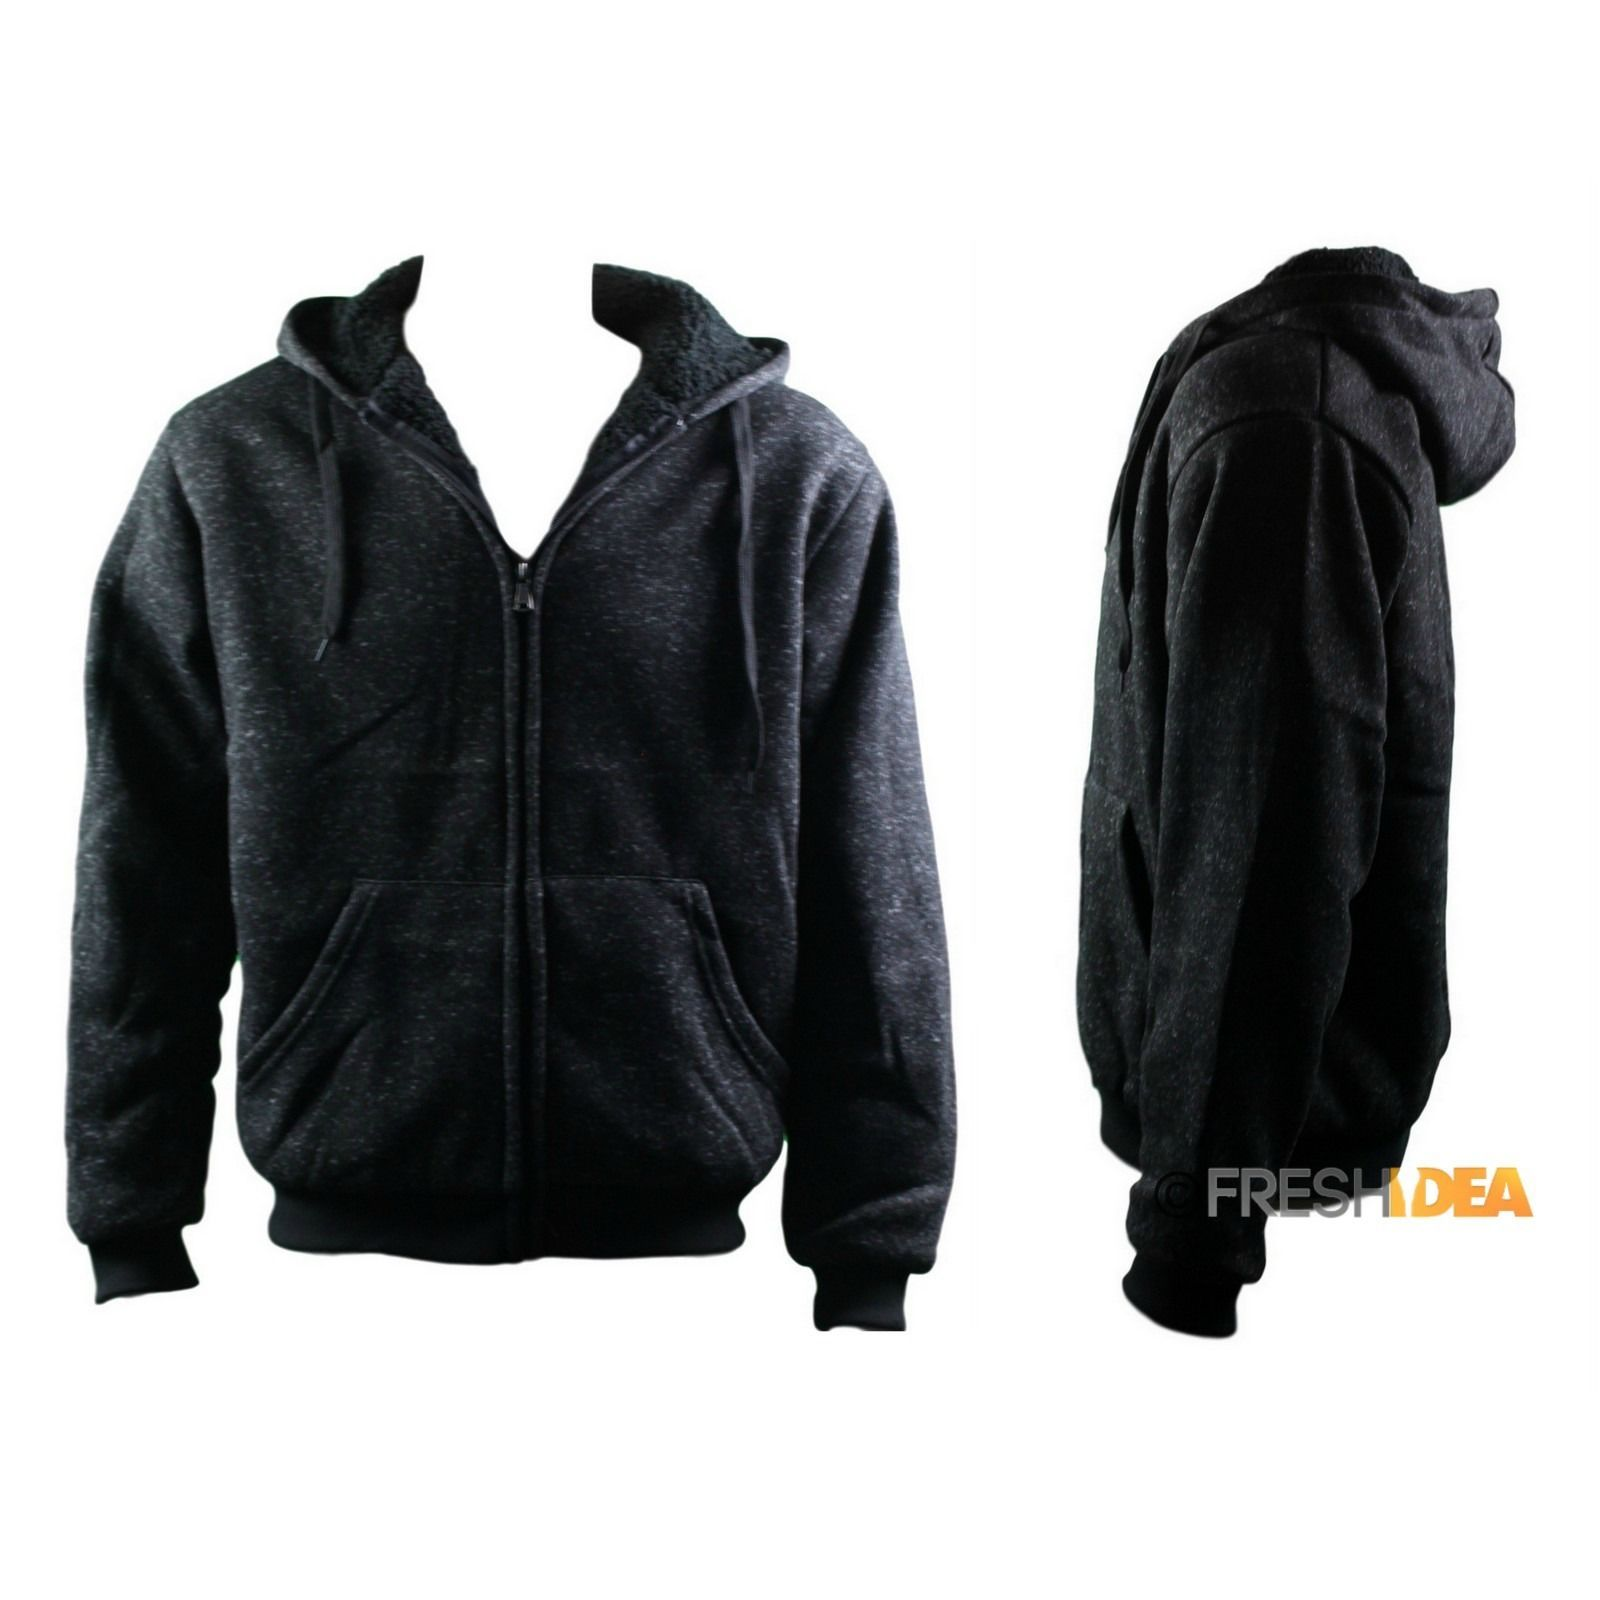 Adult-Unisex-Men-039-s-Zip-Up-Hoodie-w-Fleece-Hooded-Jacket-Jumper-Sweater-Look thumbnail 5